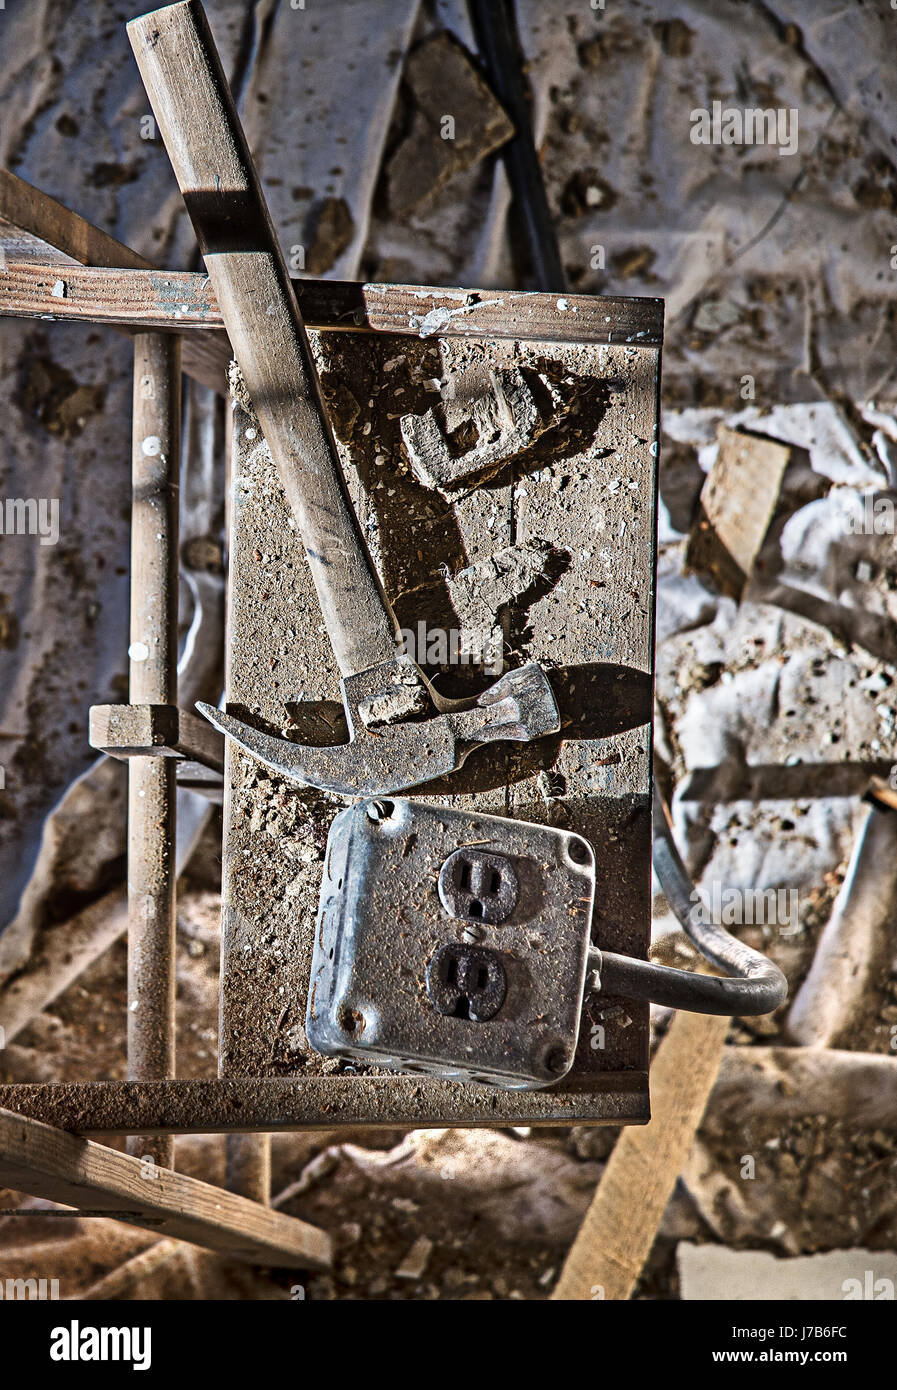 Messy Construction & Demolition Detail - Stock Image